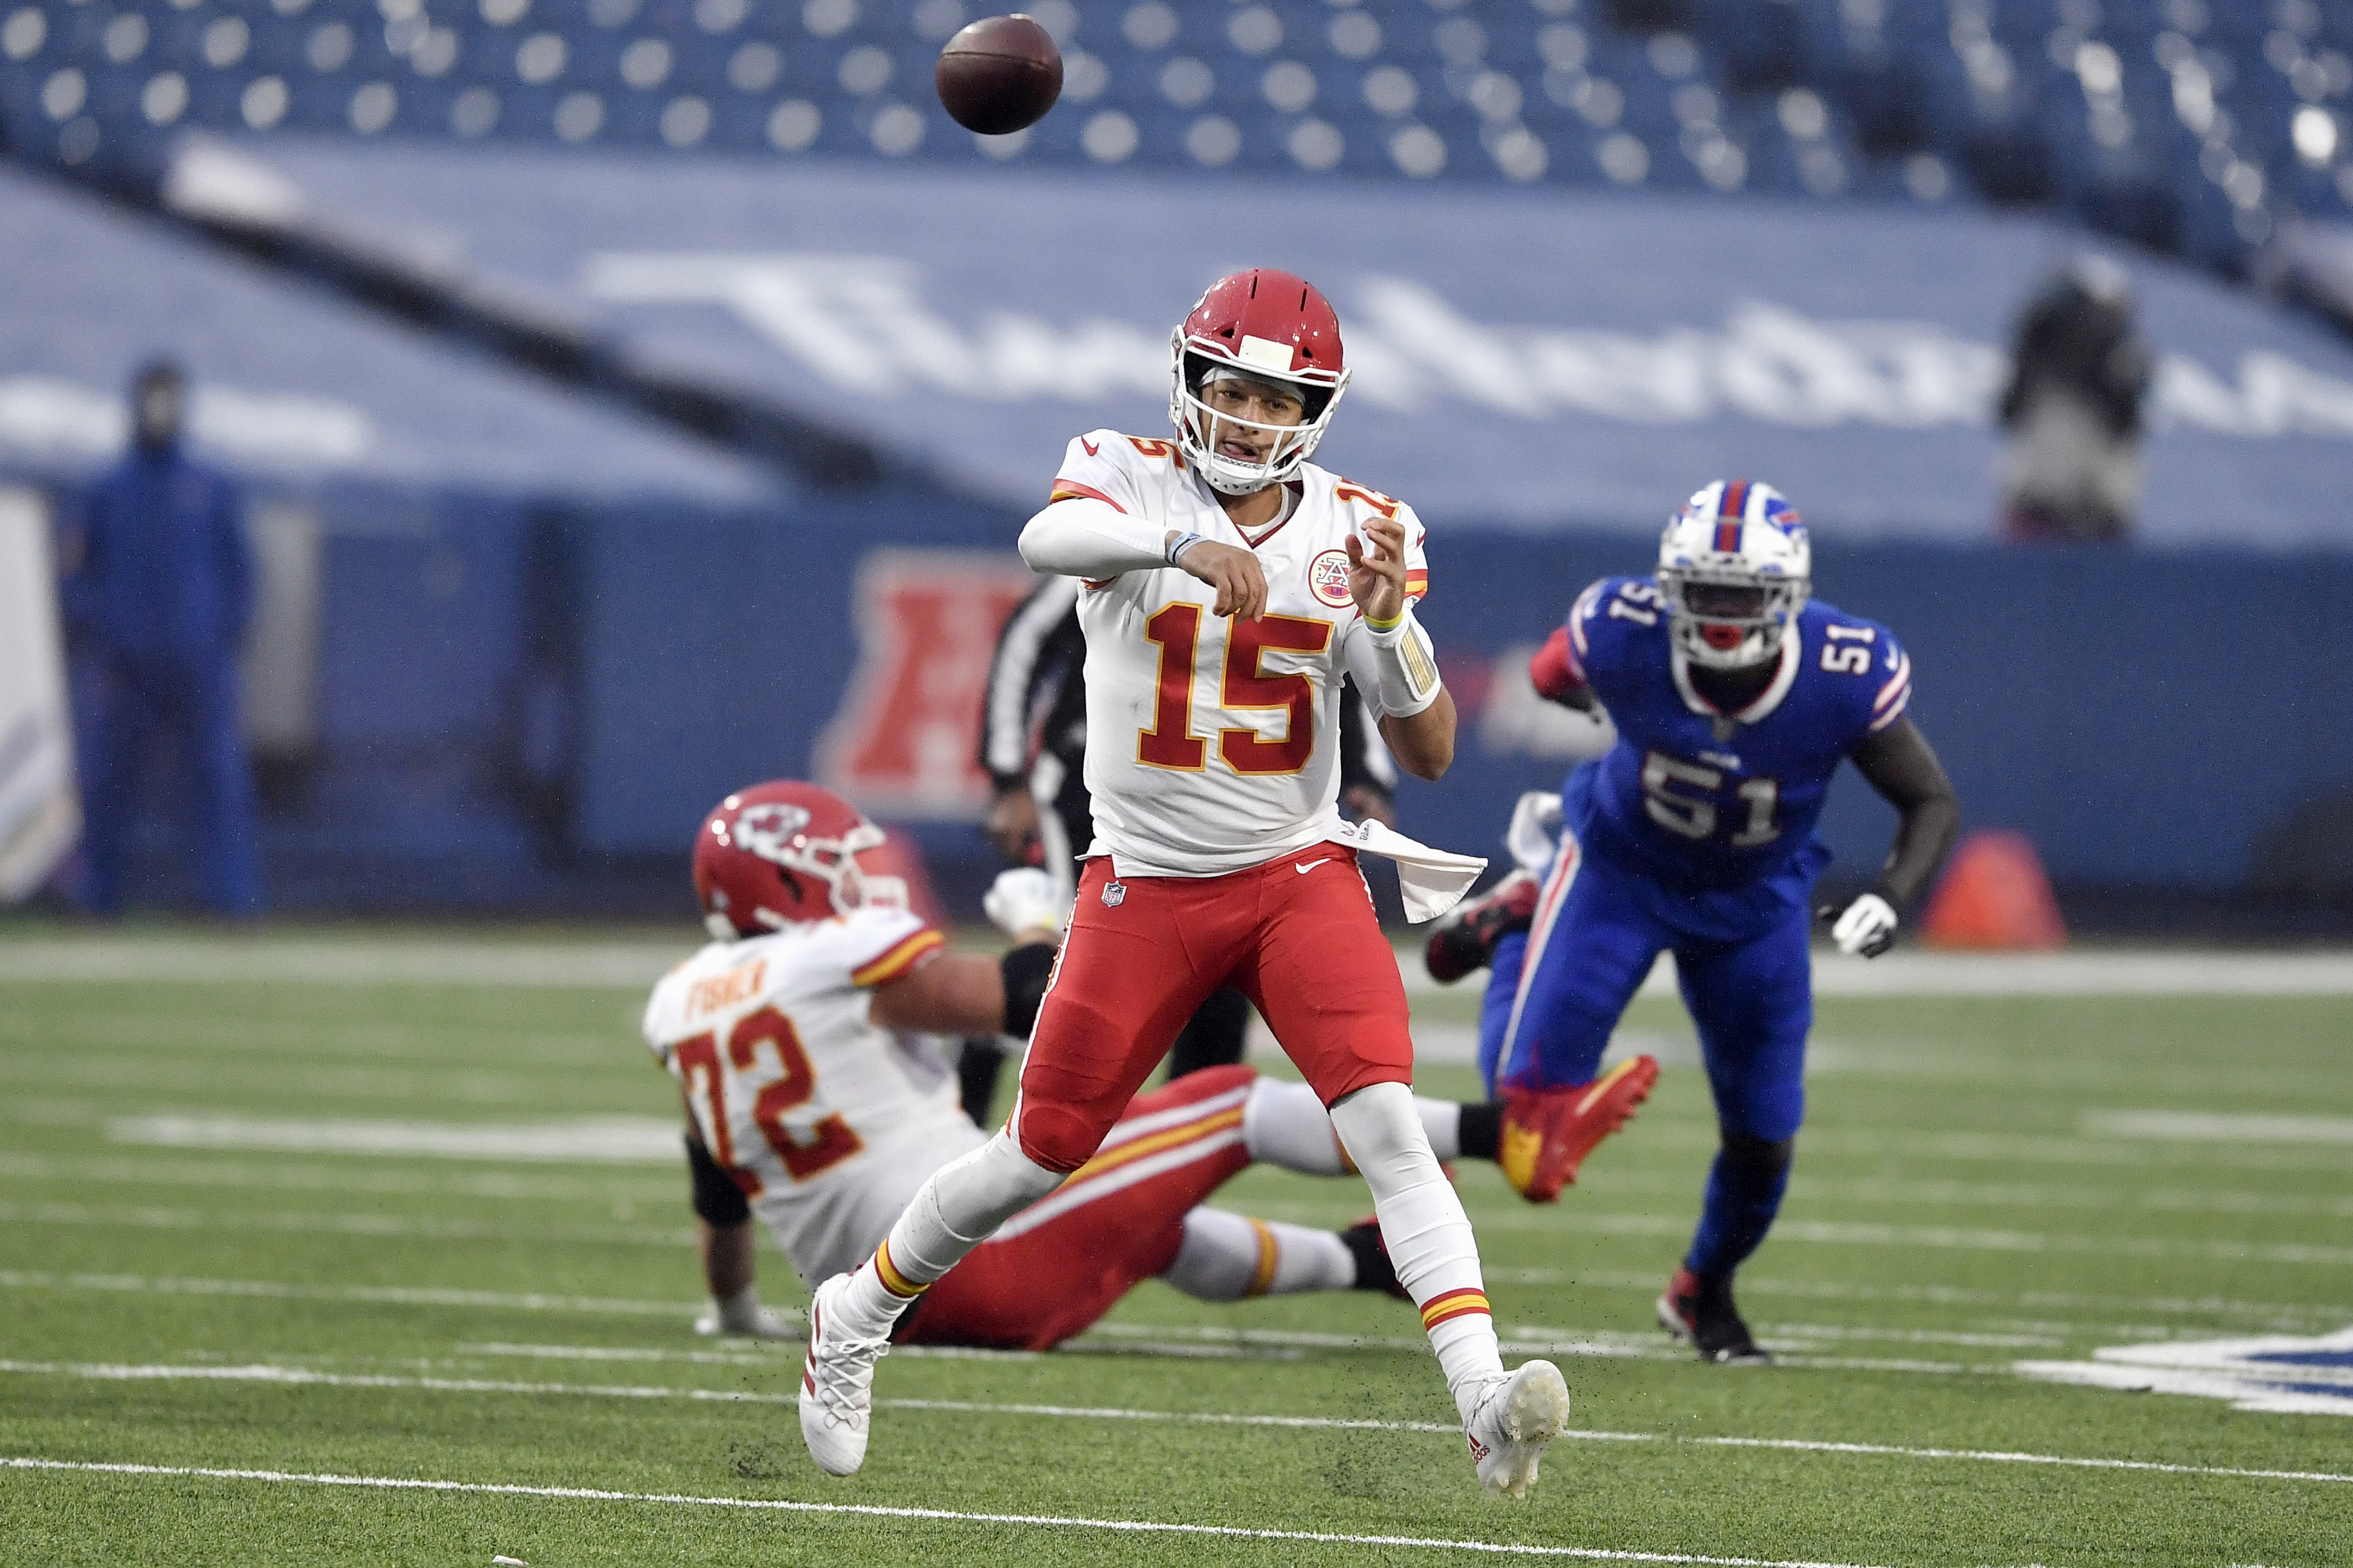 Chiefs quarterback Patrick Mahomes continues to progress with time